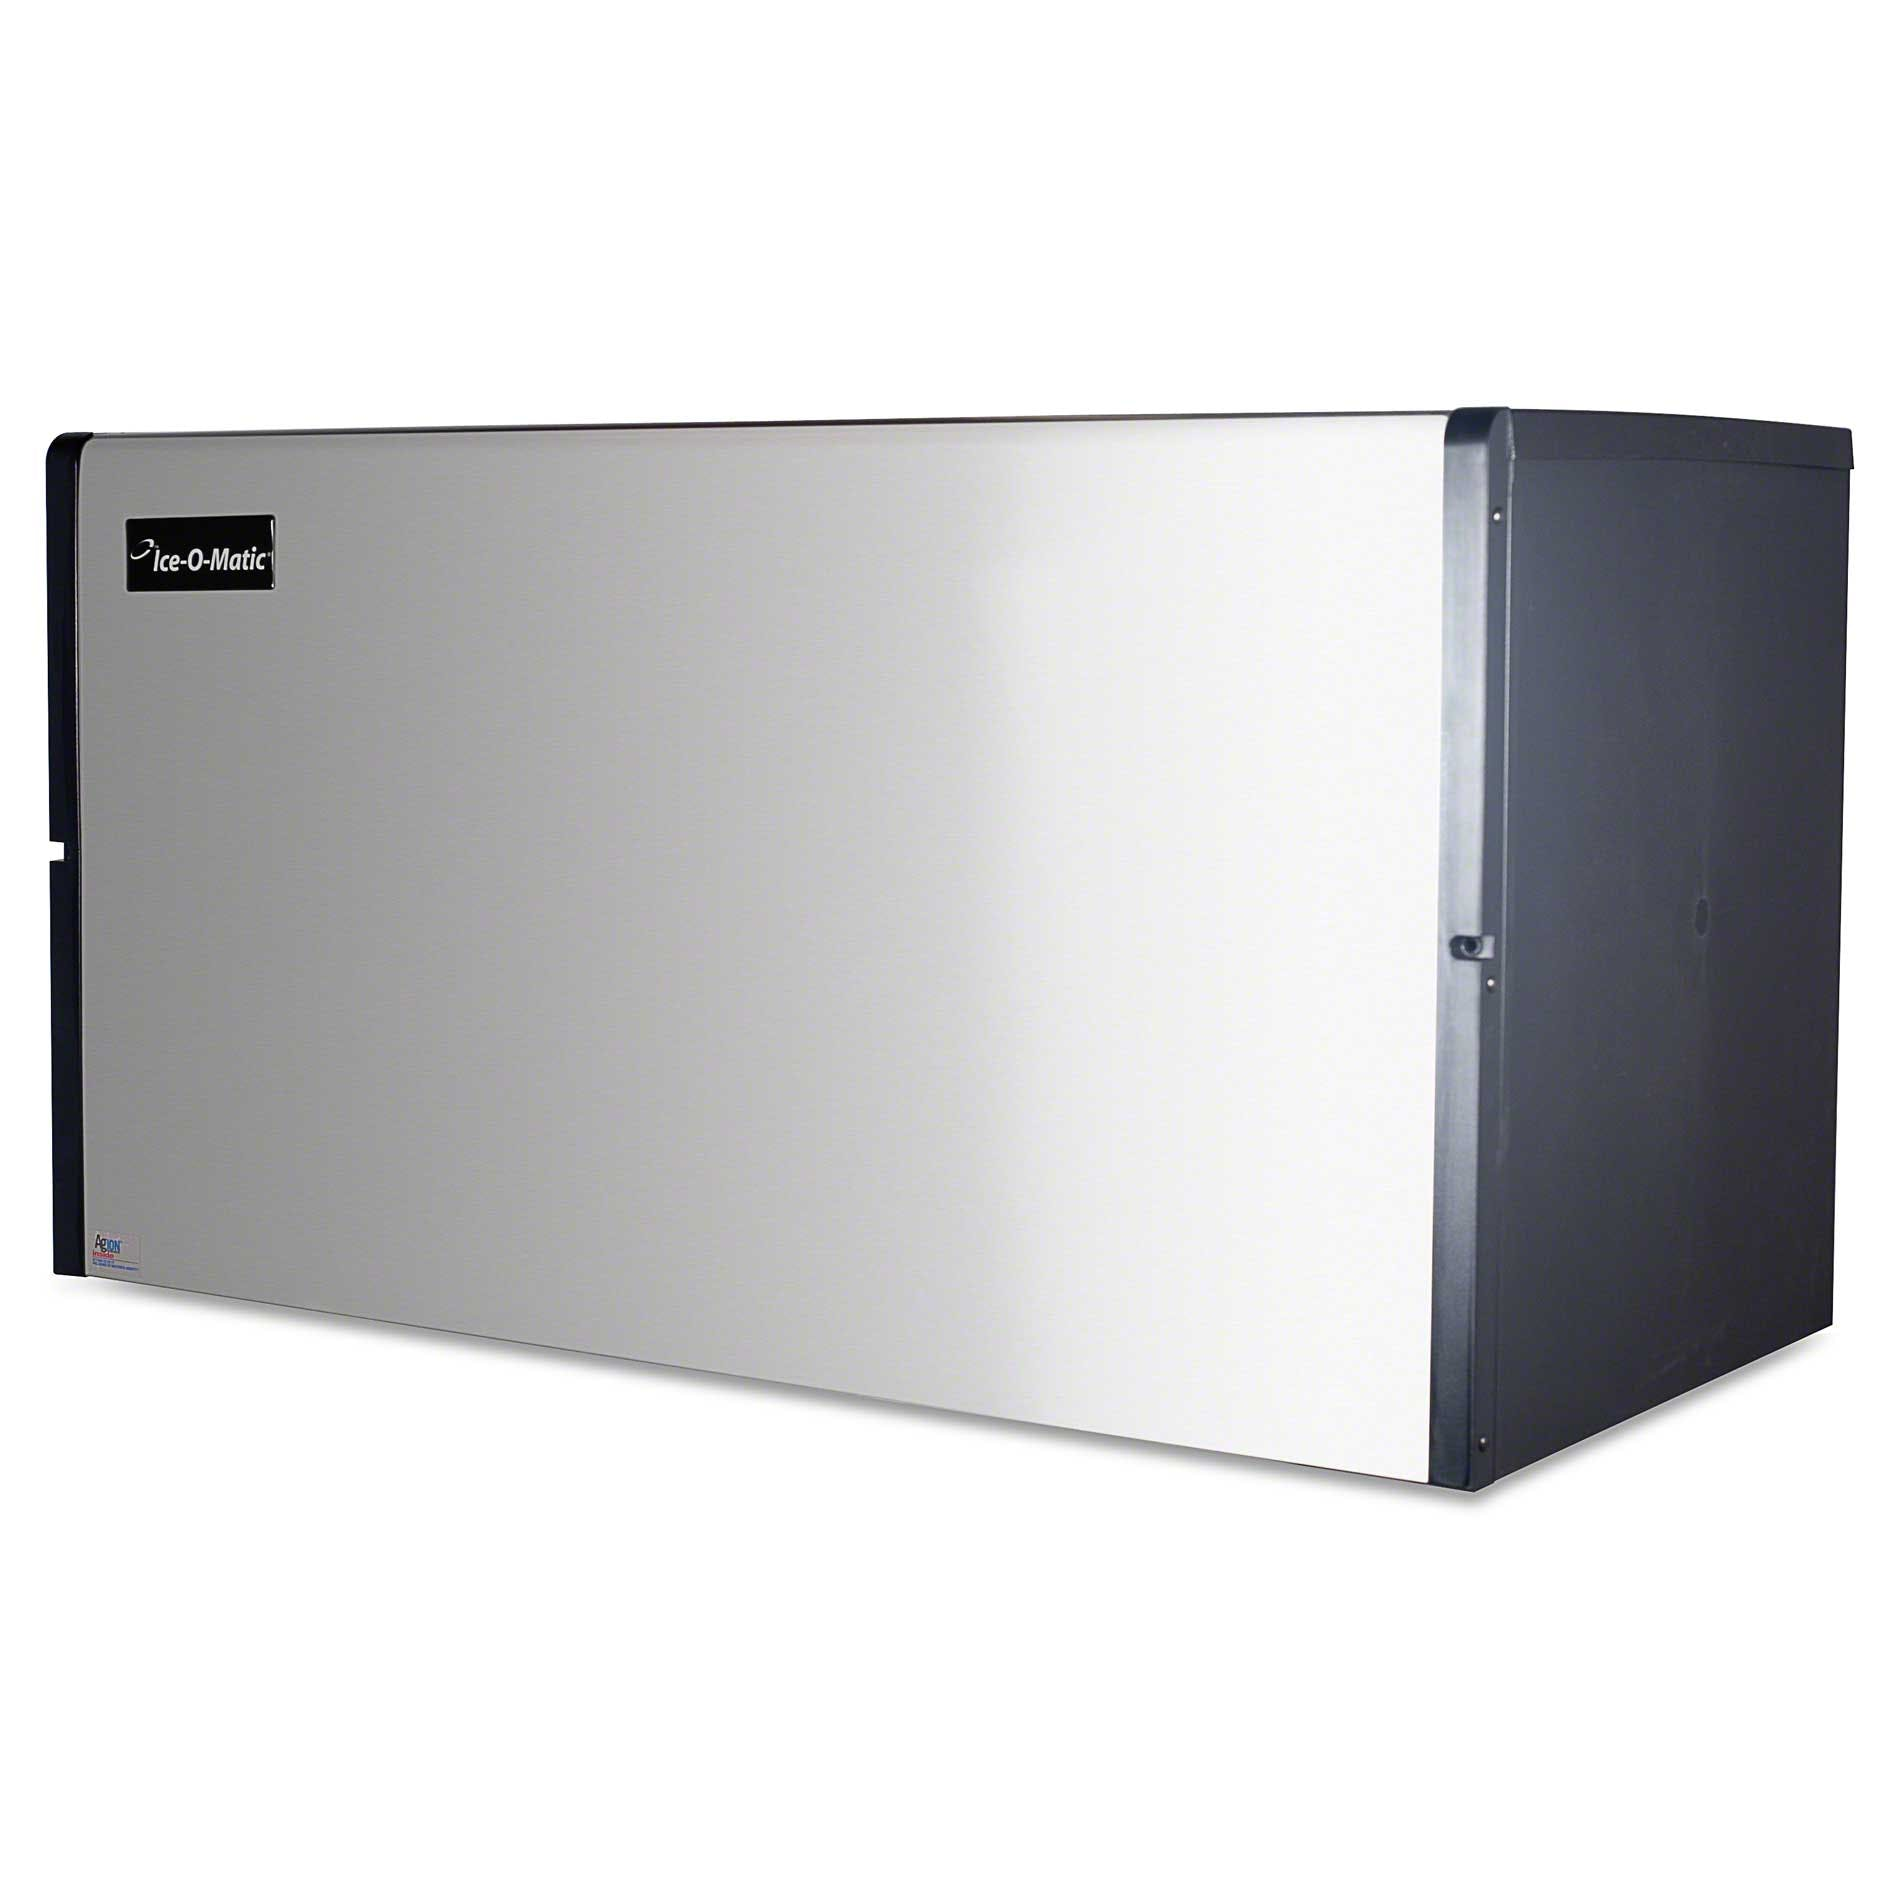 Ice-O-Matic - ICE1406FW 1386 lb Full Cube Ice Machine - sold by Food Service Warehouse